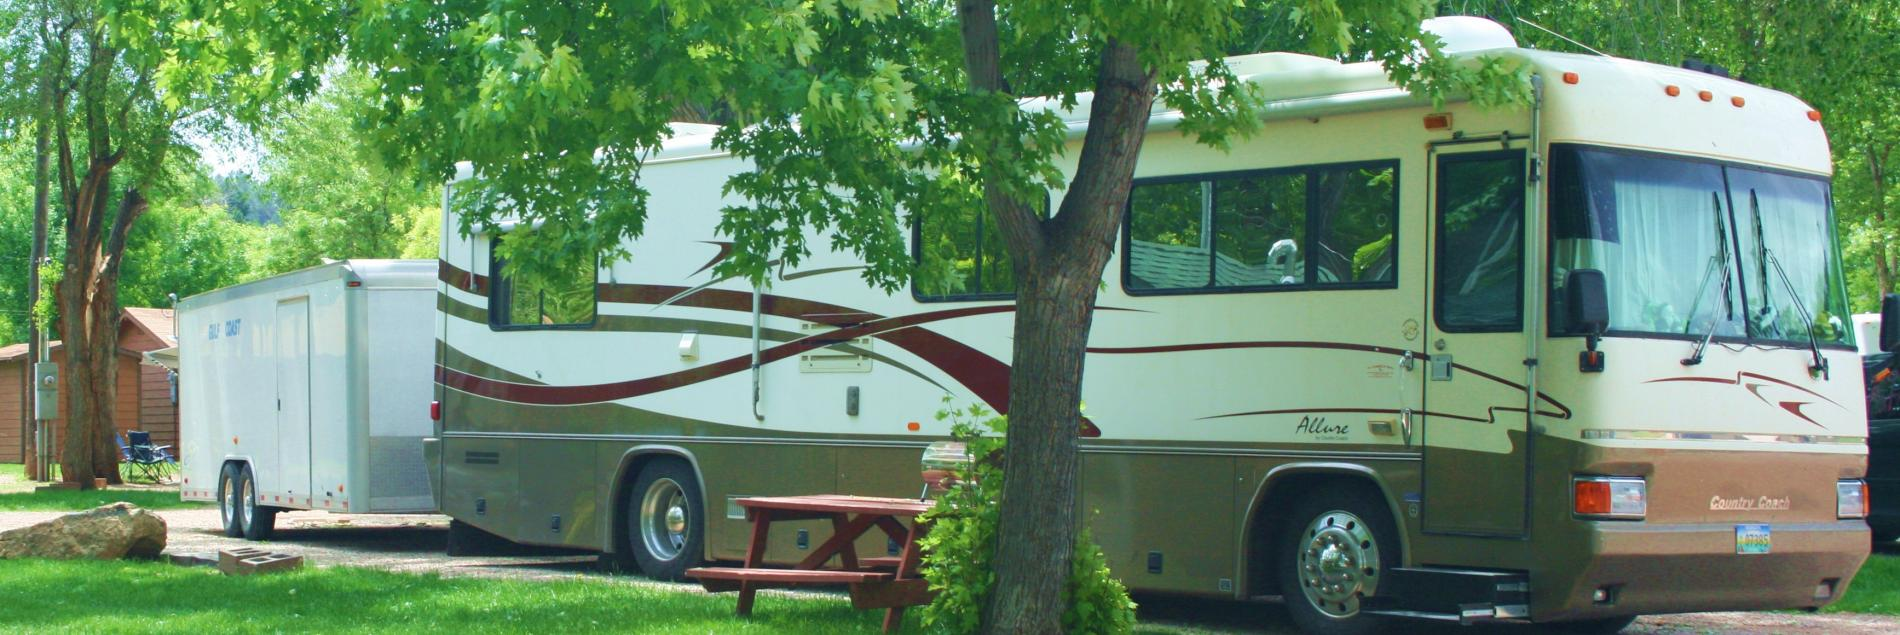 Lake Park Campground & Cottages